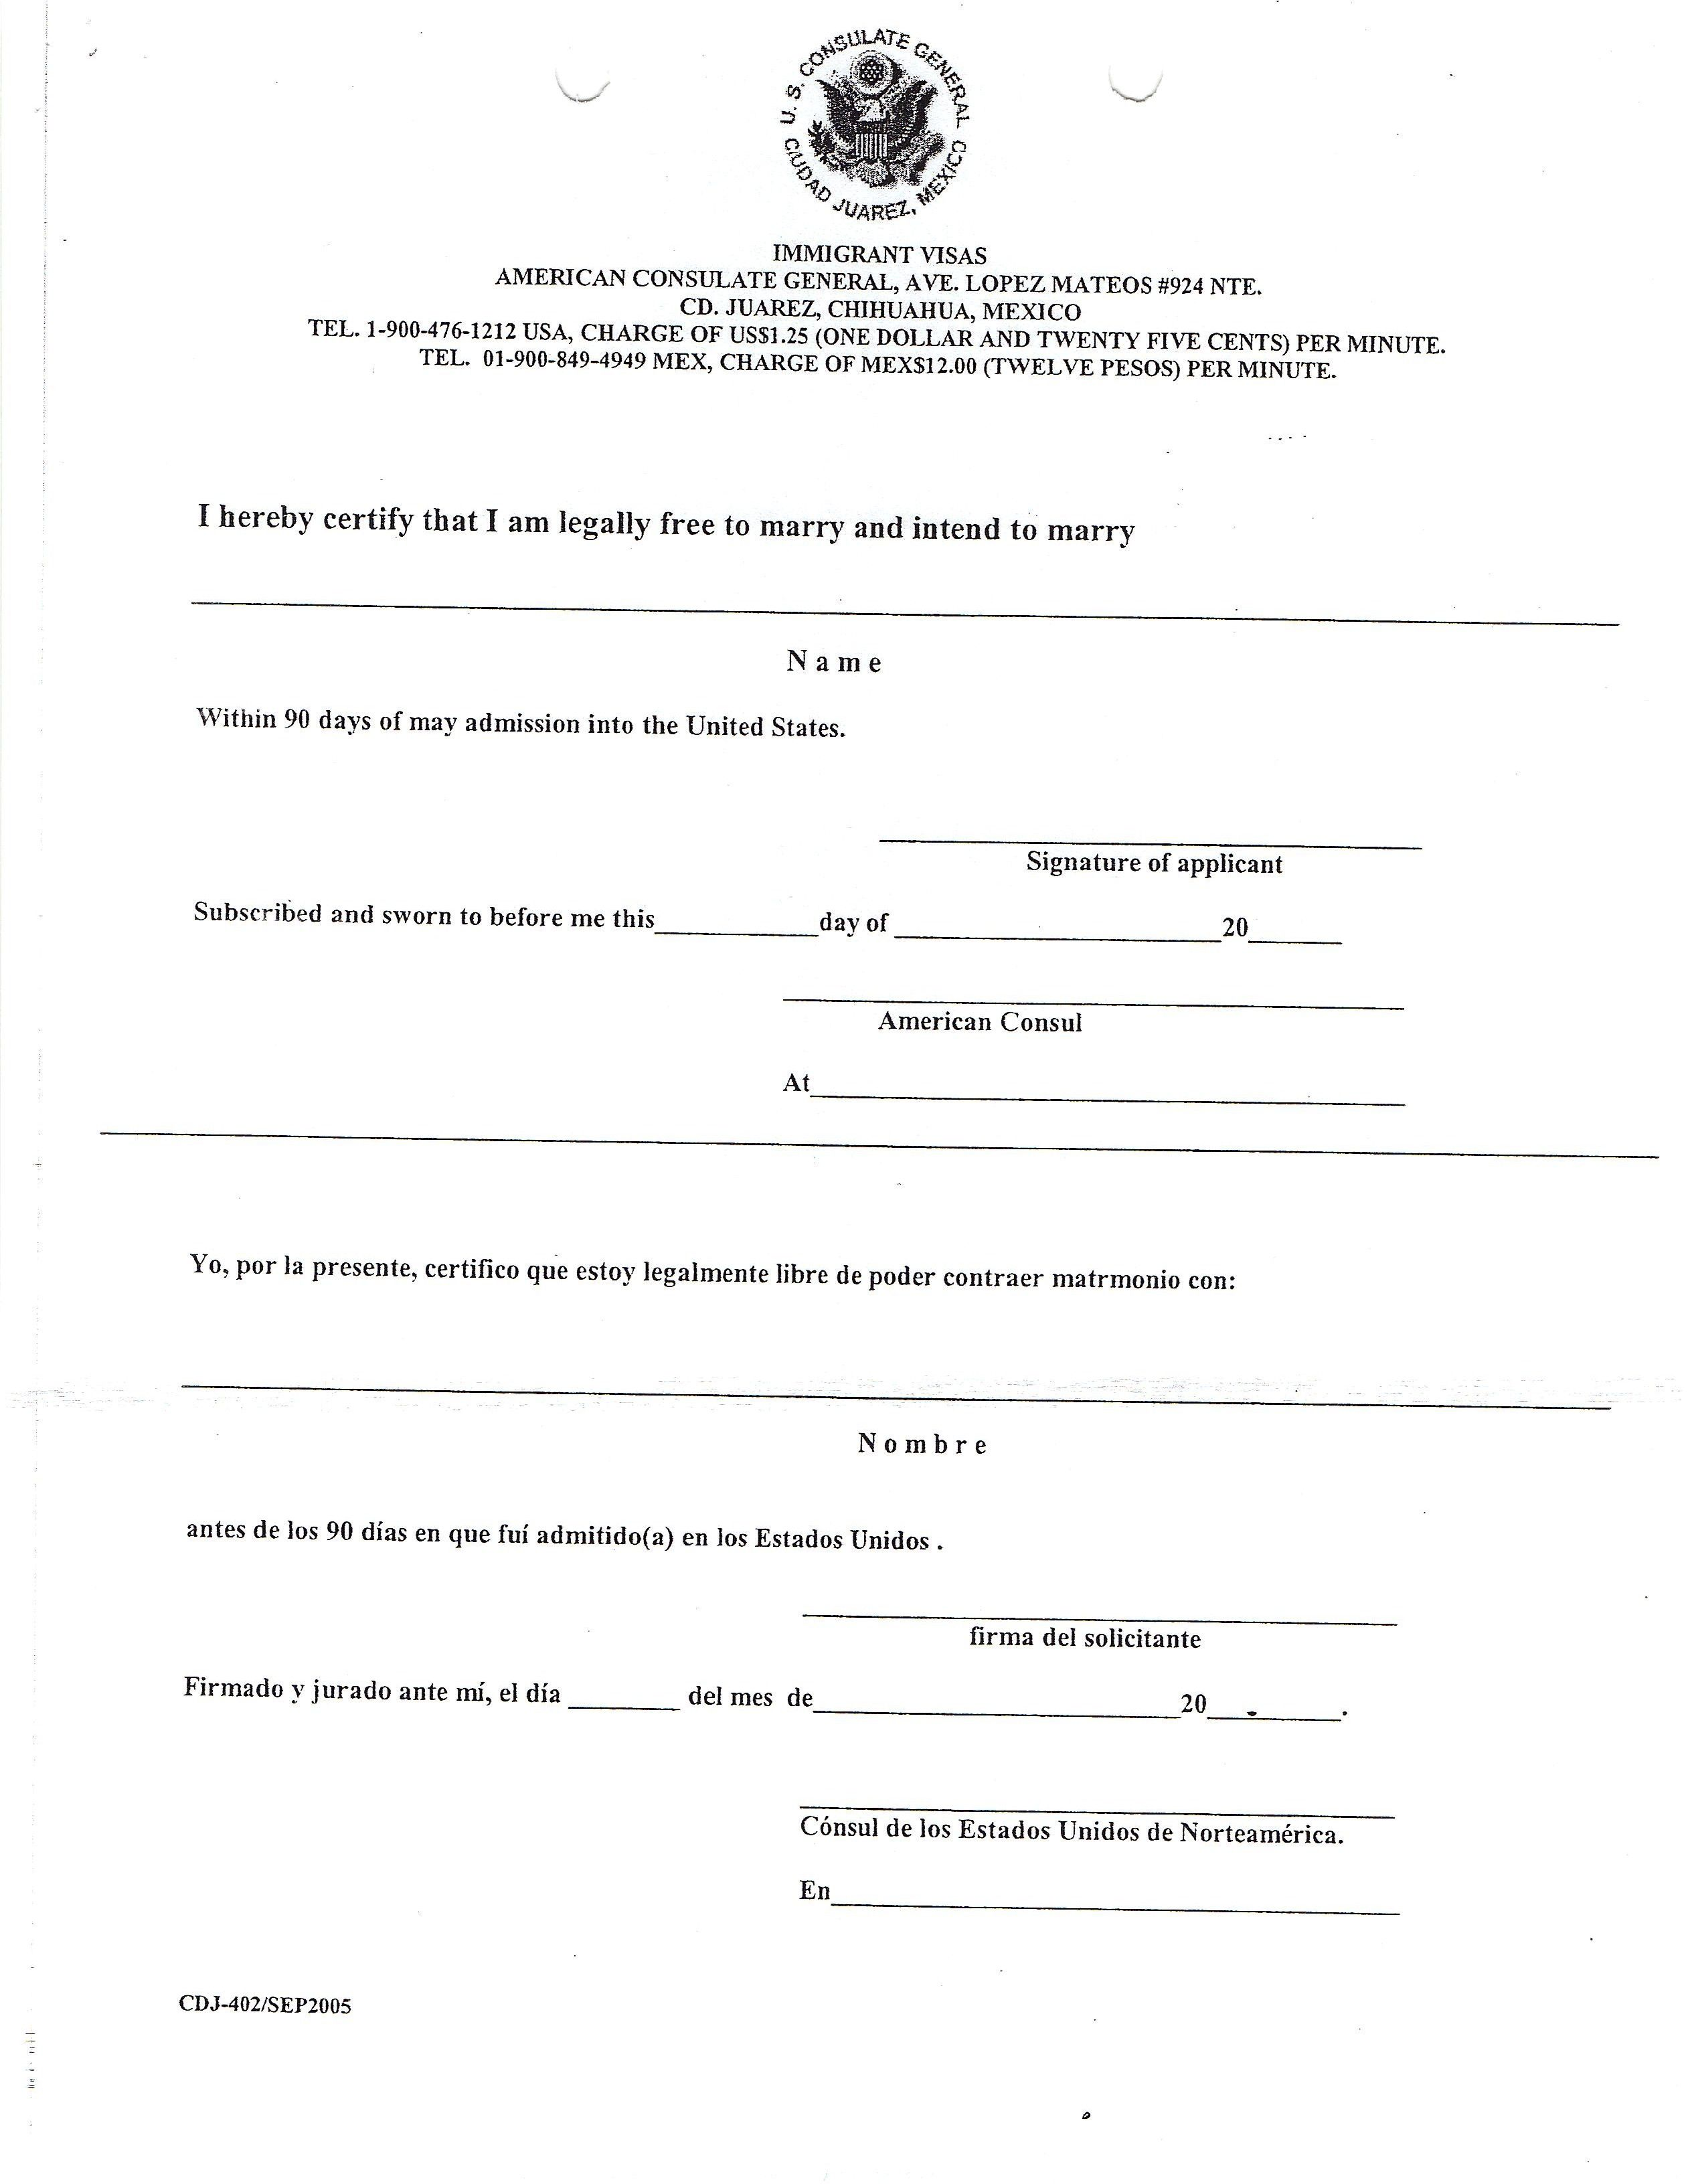 resources step immigration forms sample intent marry letter best free home design idea inspiration